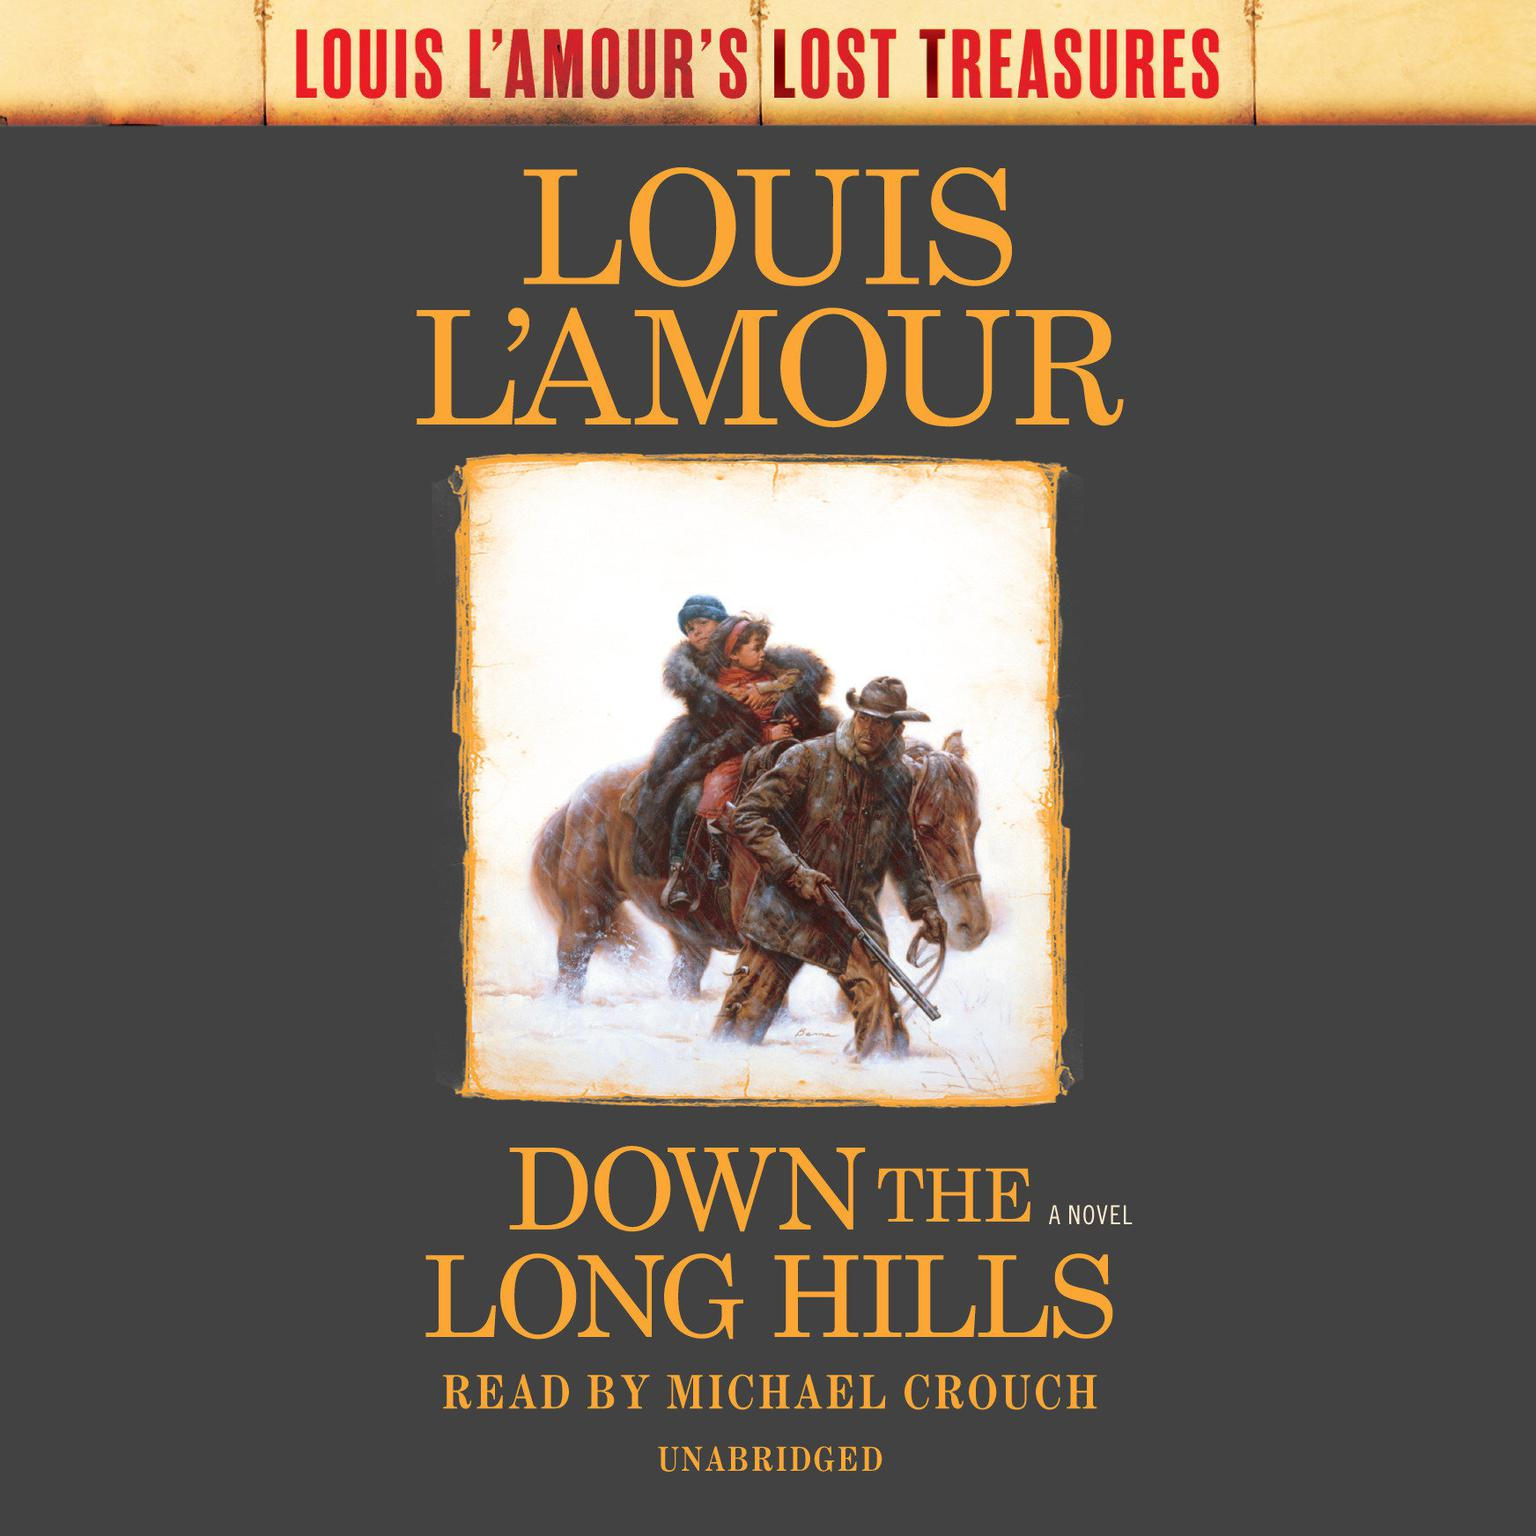 Down the Long Hills (Louis LAmours Lost Treasures): A Novel Audiobook, by Louis L'Amour